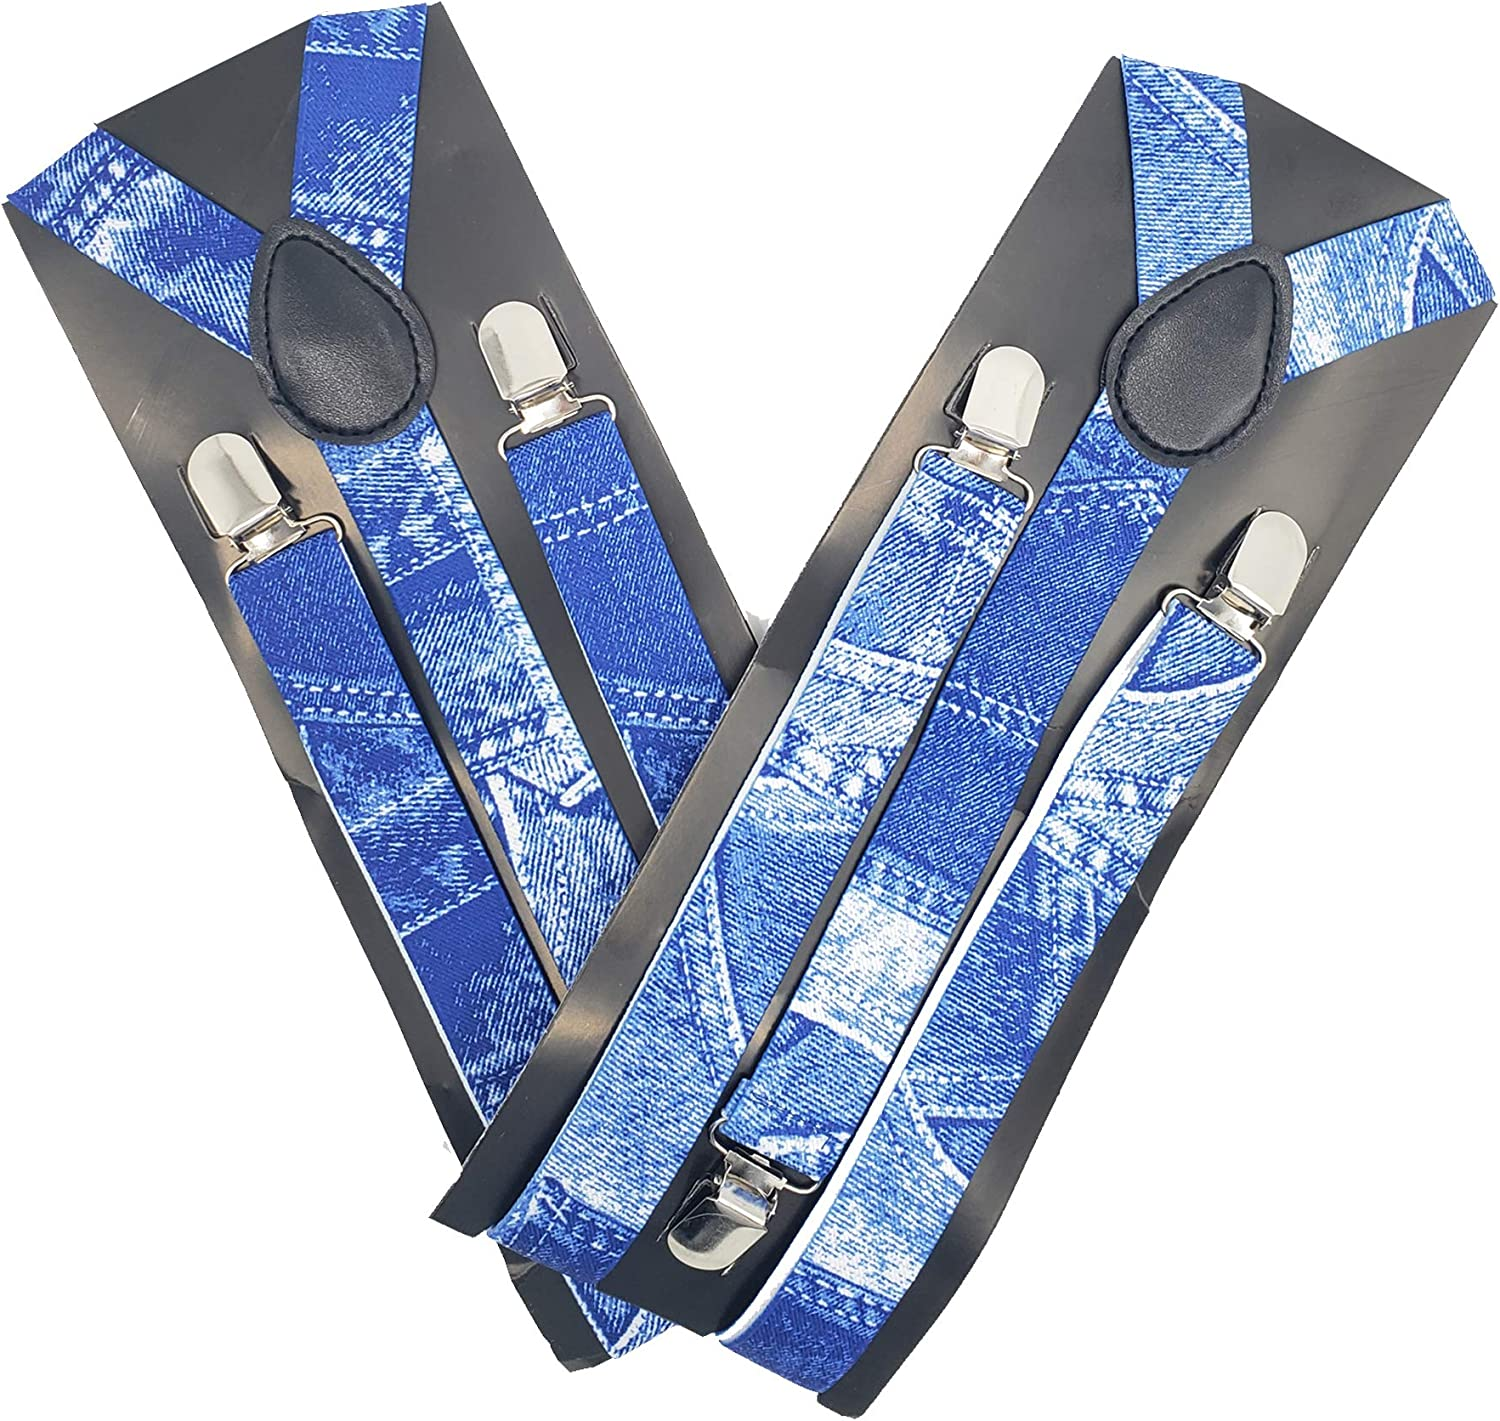 Blue Jean Suspenders (2 Pack) - Adjustable Elastic Clip-On Y-Back for Men and Women in jean colors